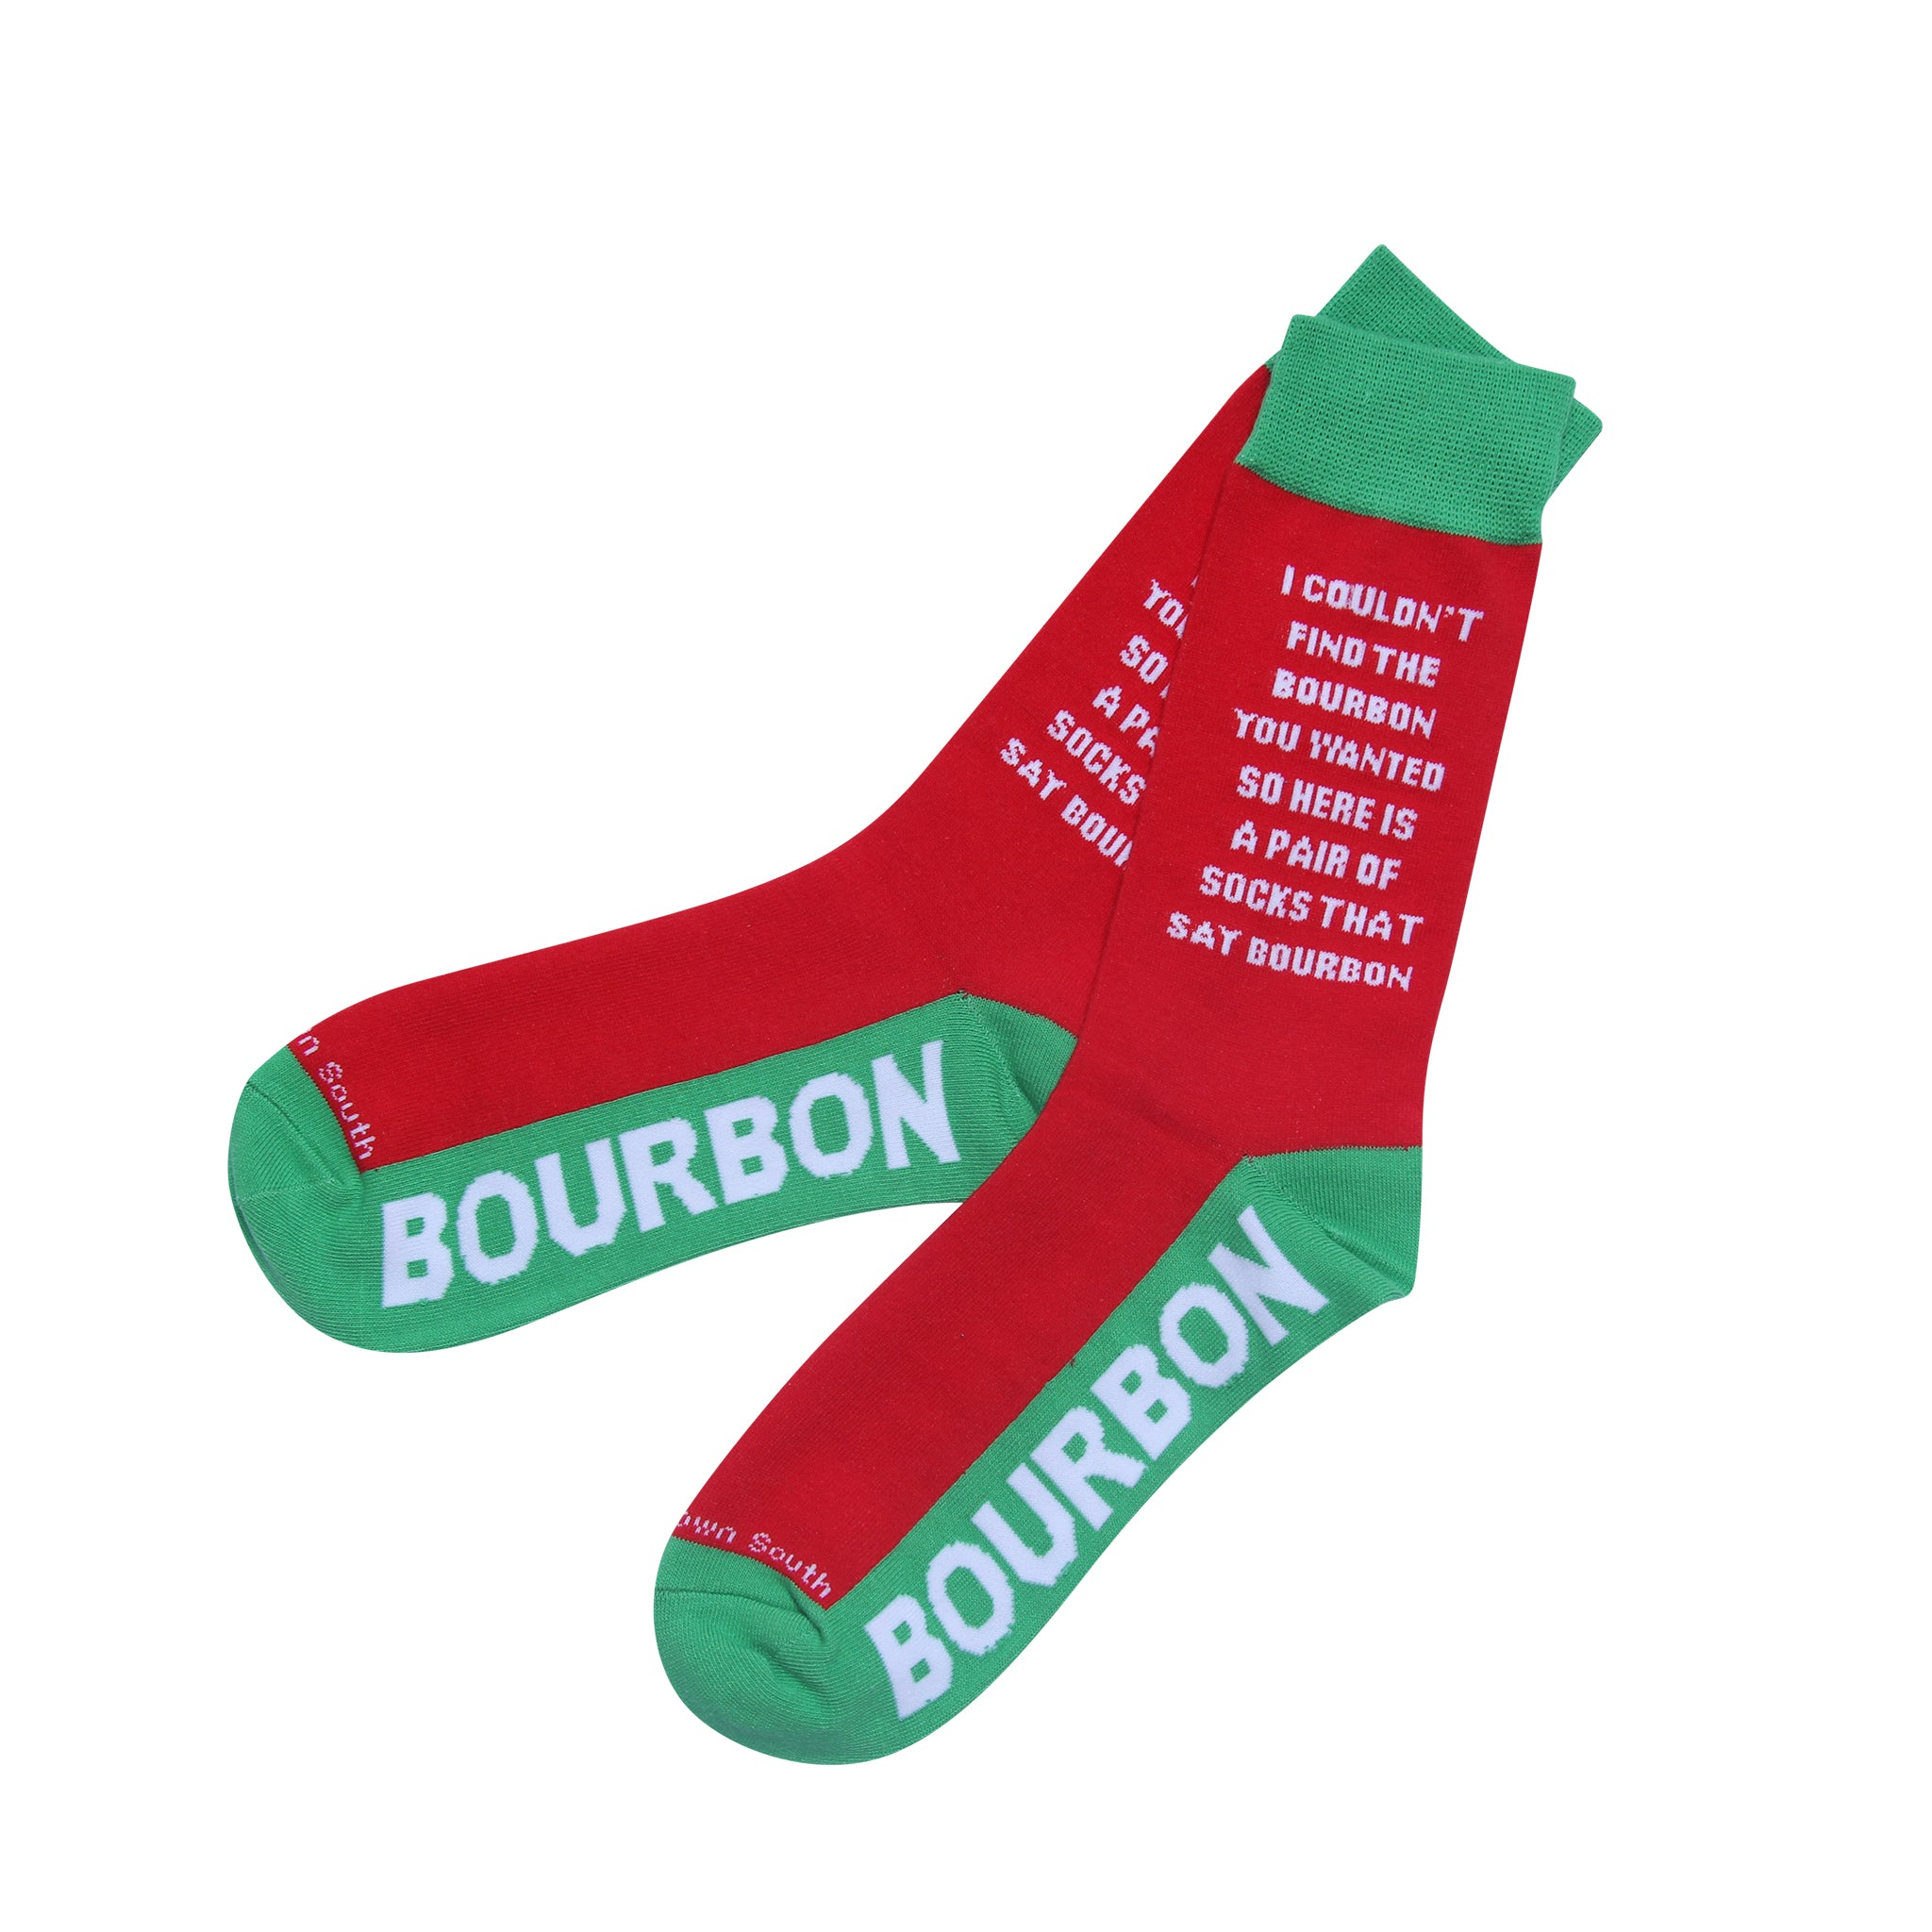 I Couldn't Find The Bourbon Socks